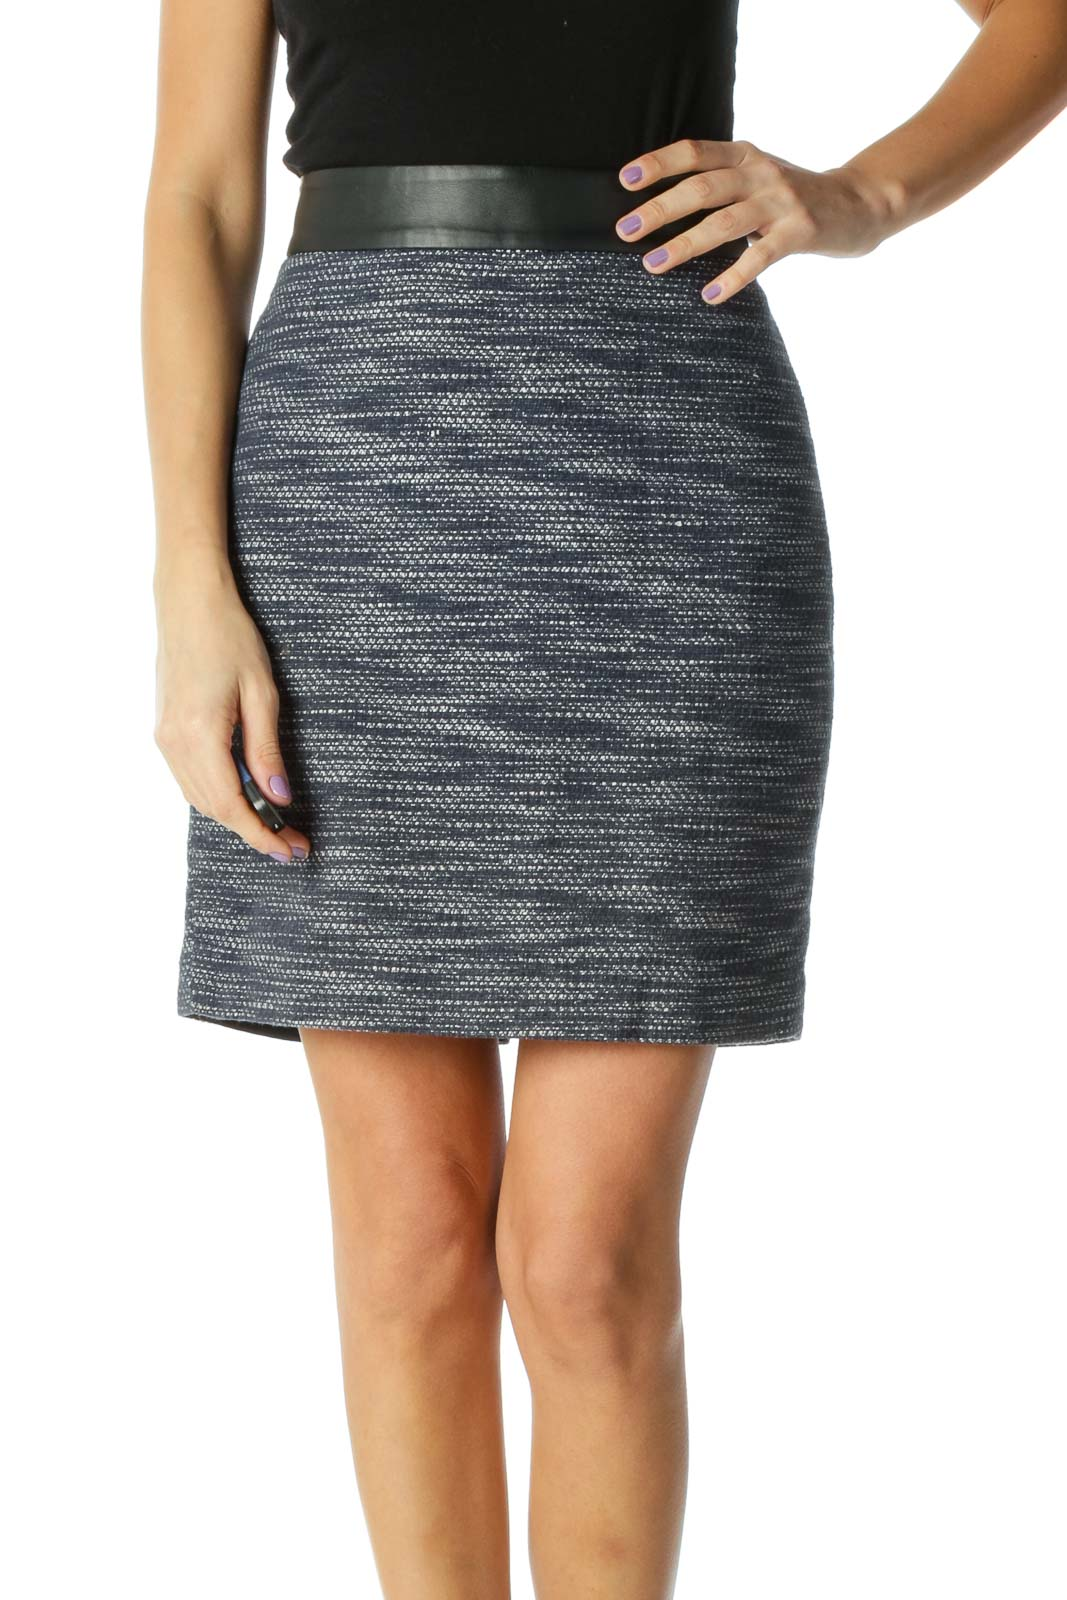 Blue Striped Chic Pencil Skirt Front